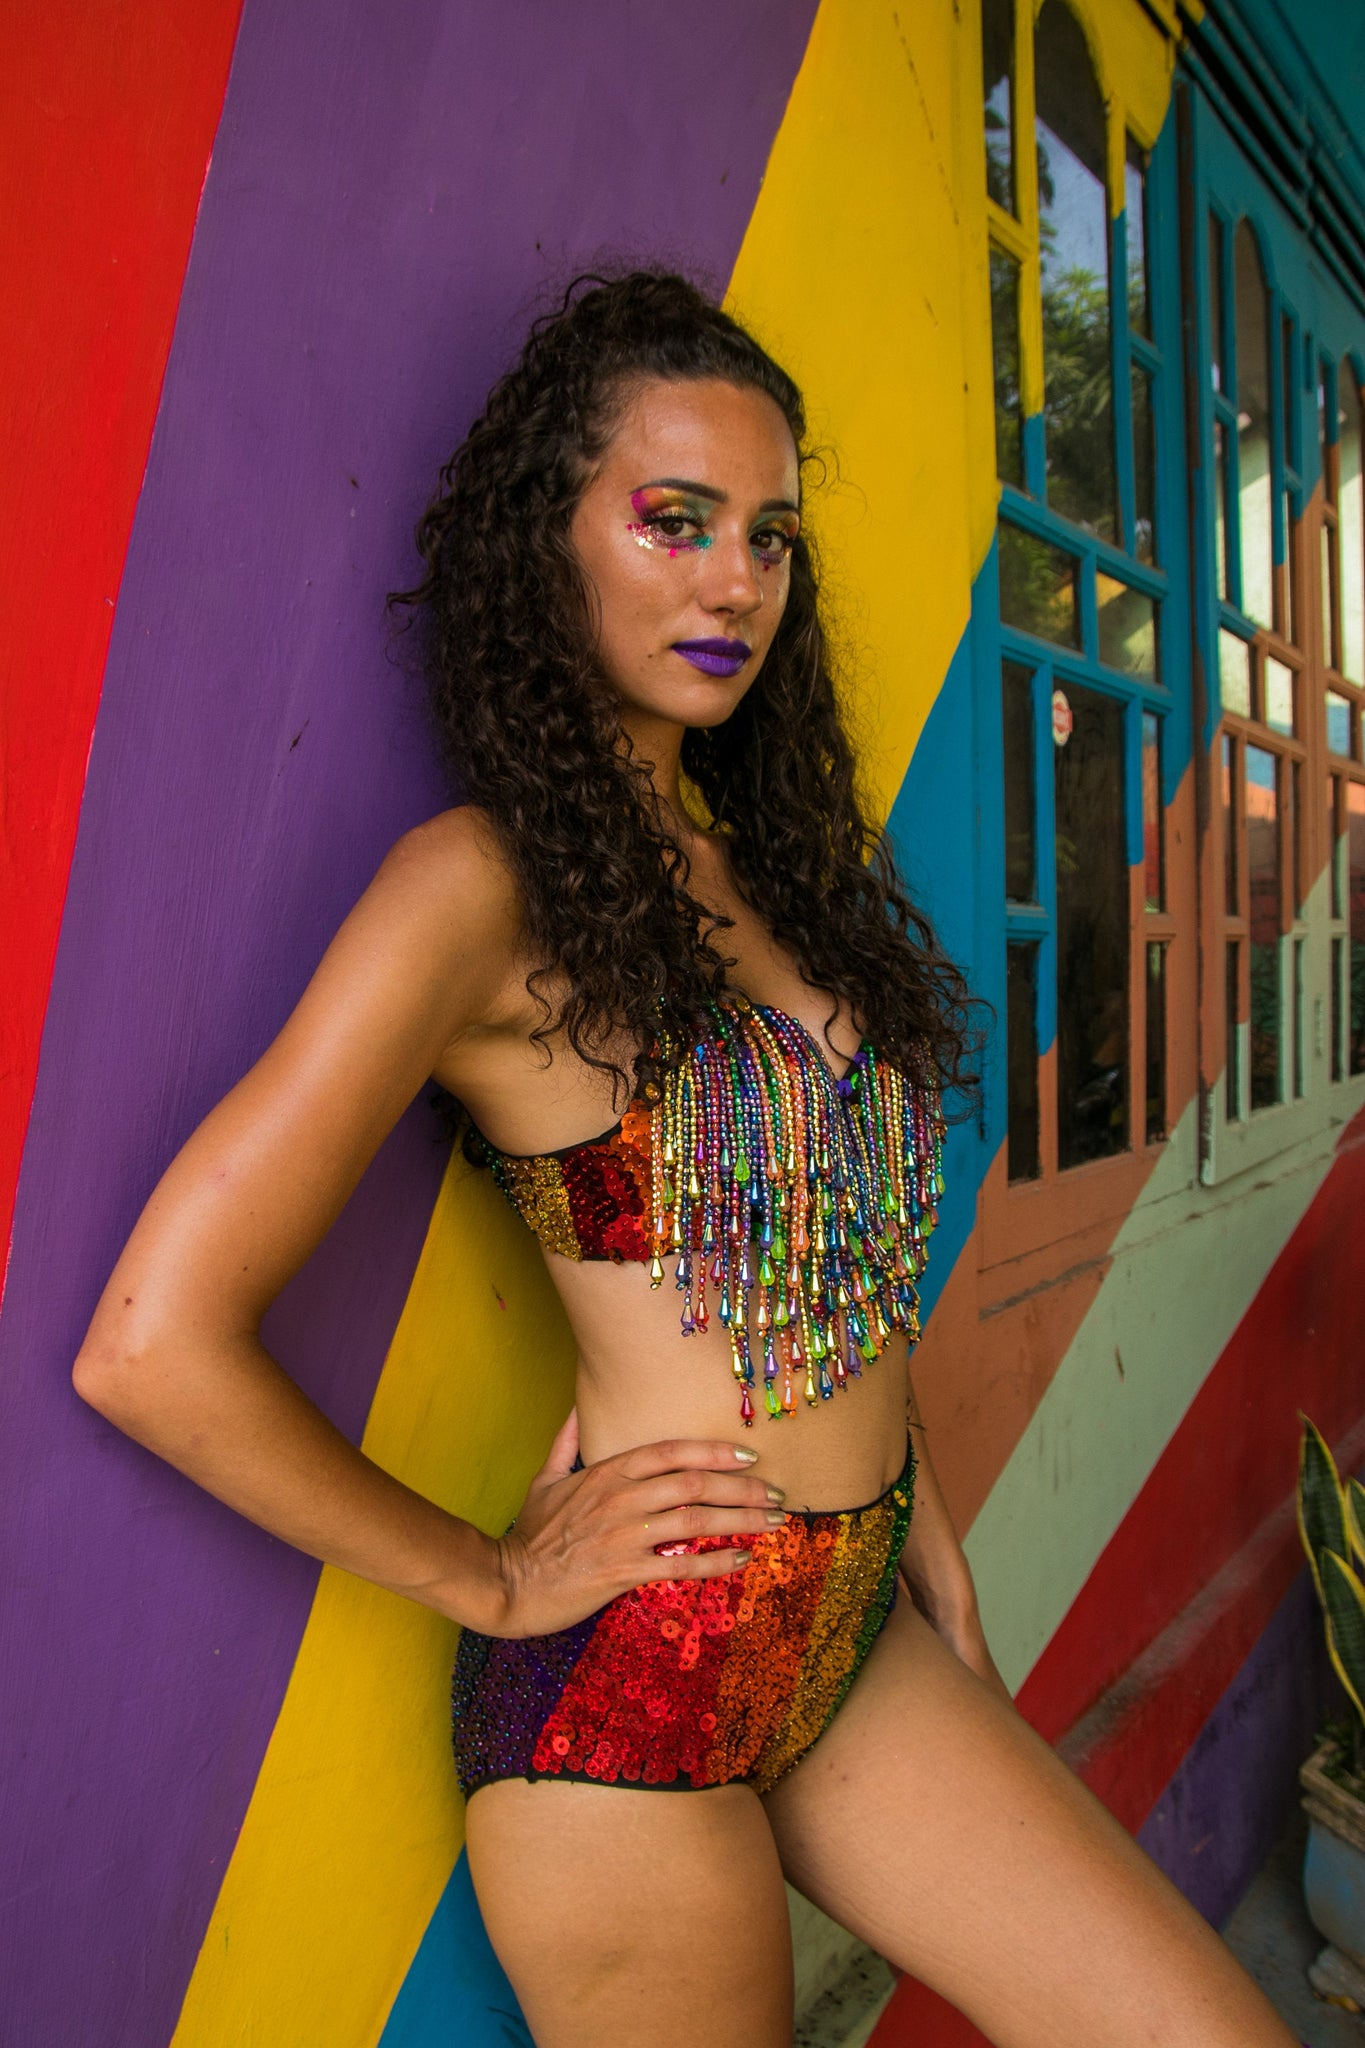 rainbow beads bra sequins